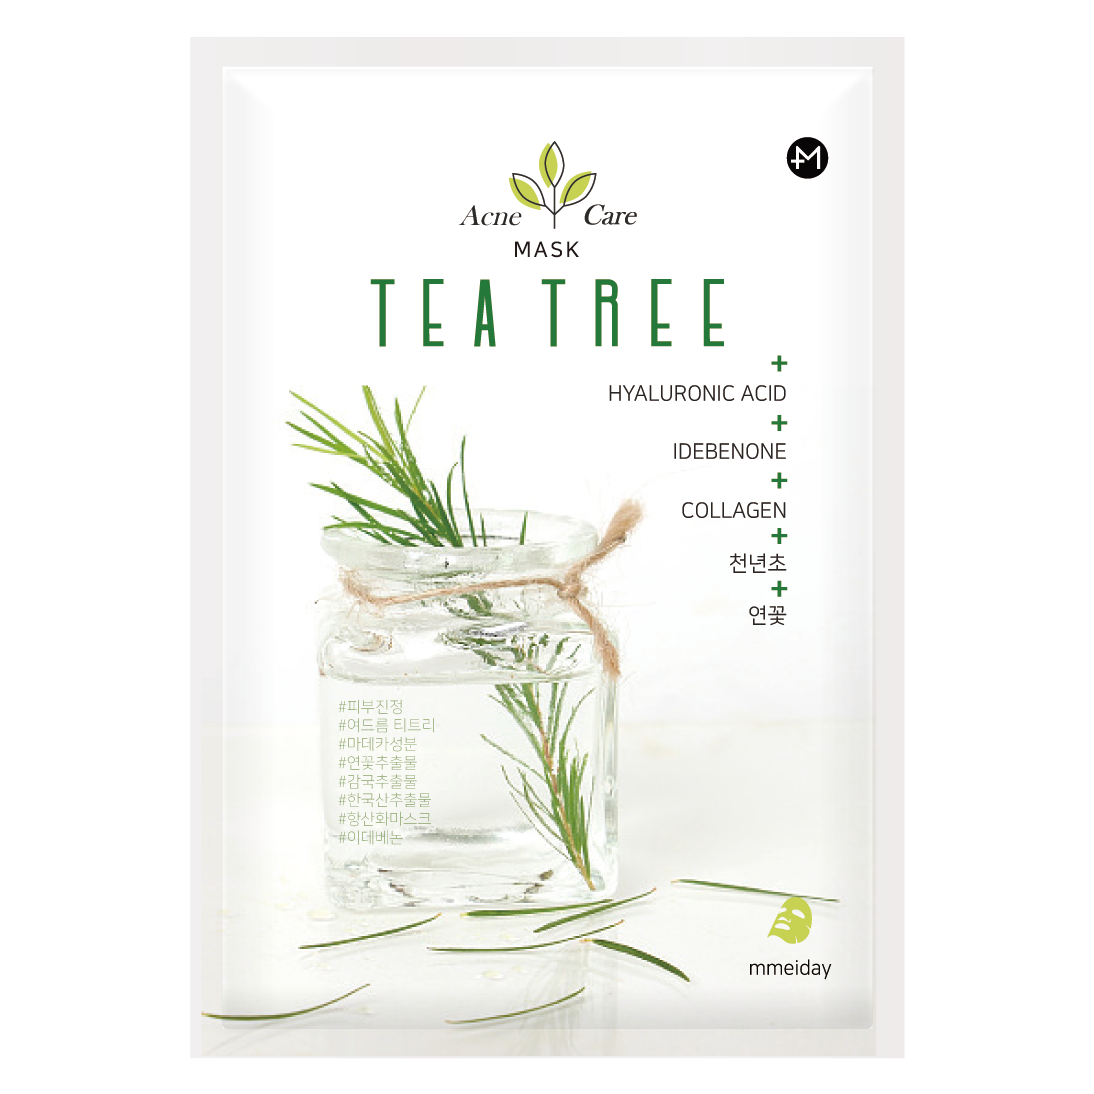 Tea tree Acne care Mask